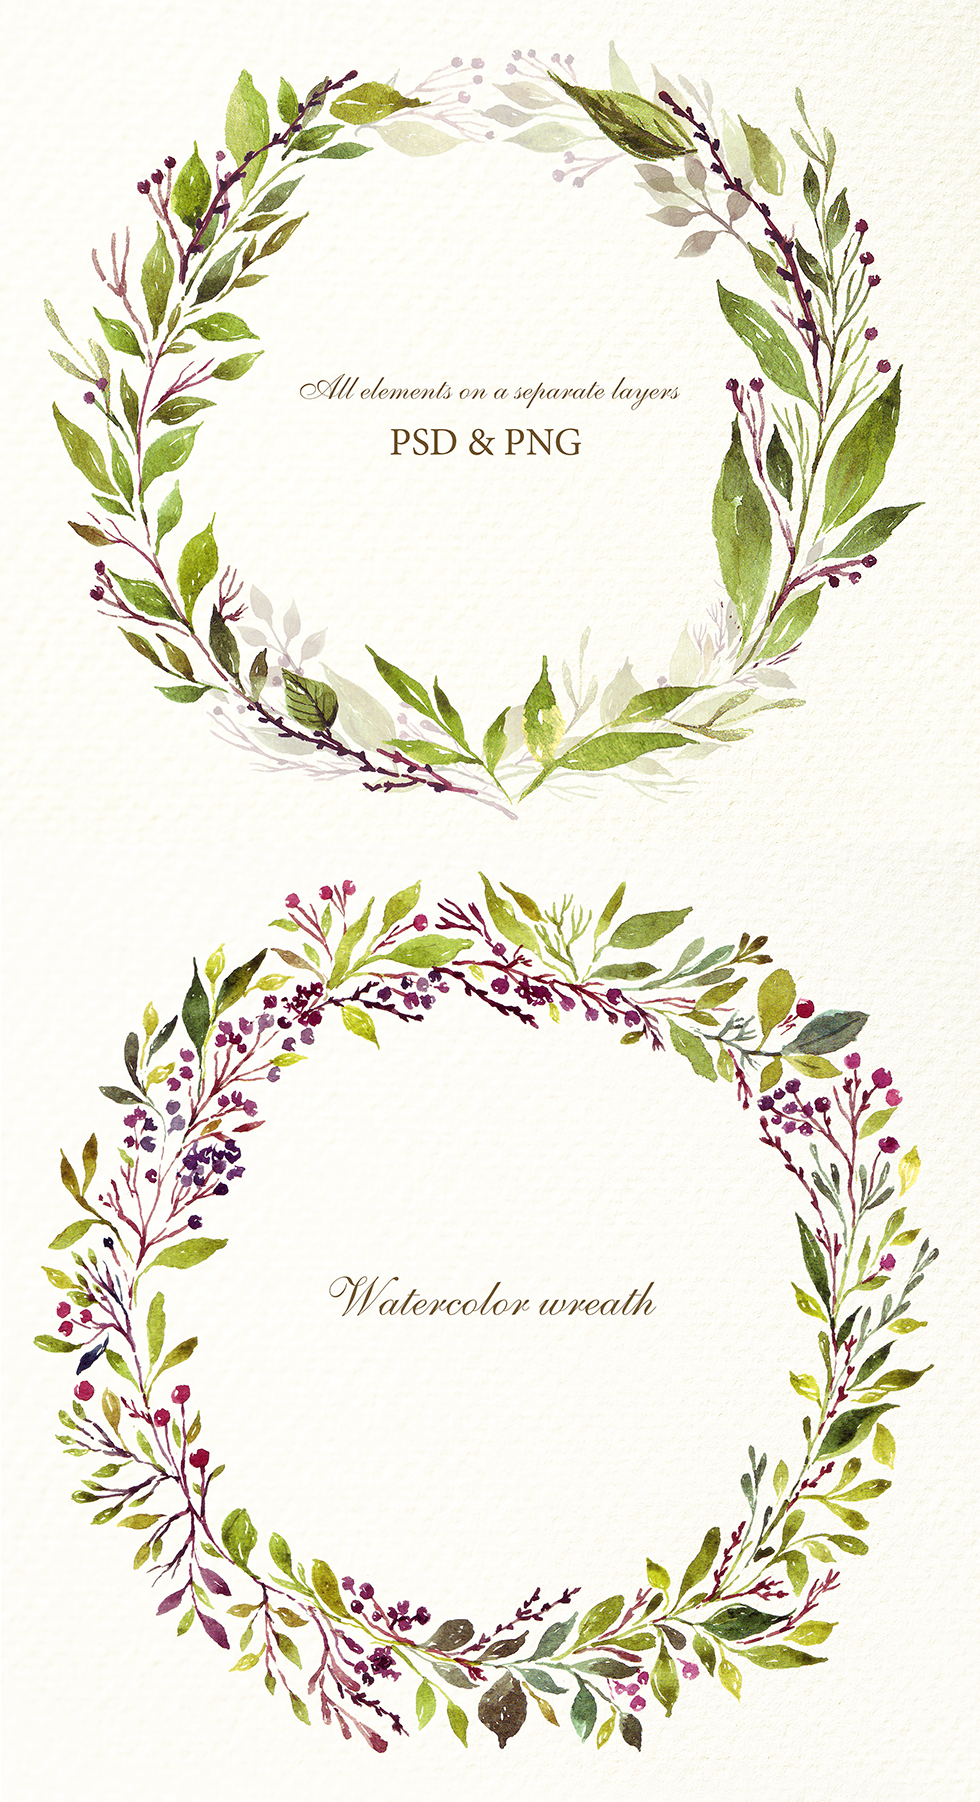 230 Watercolor graphic elements example image 12